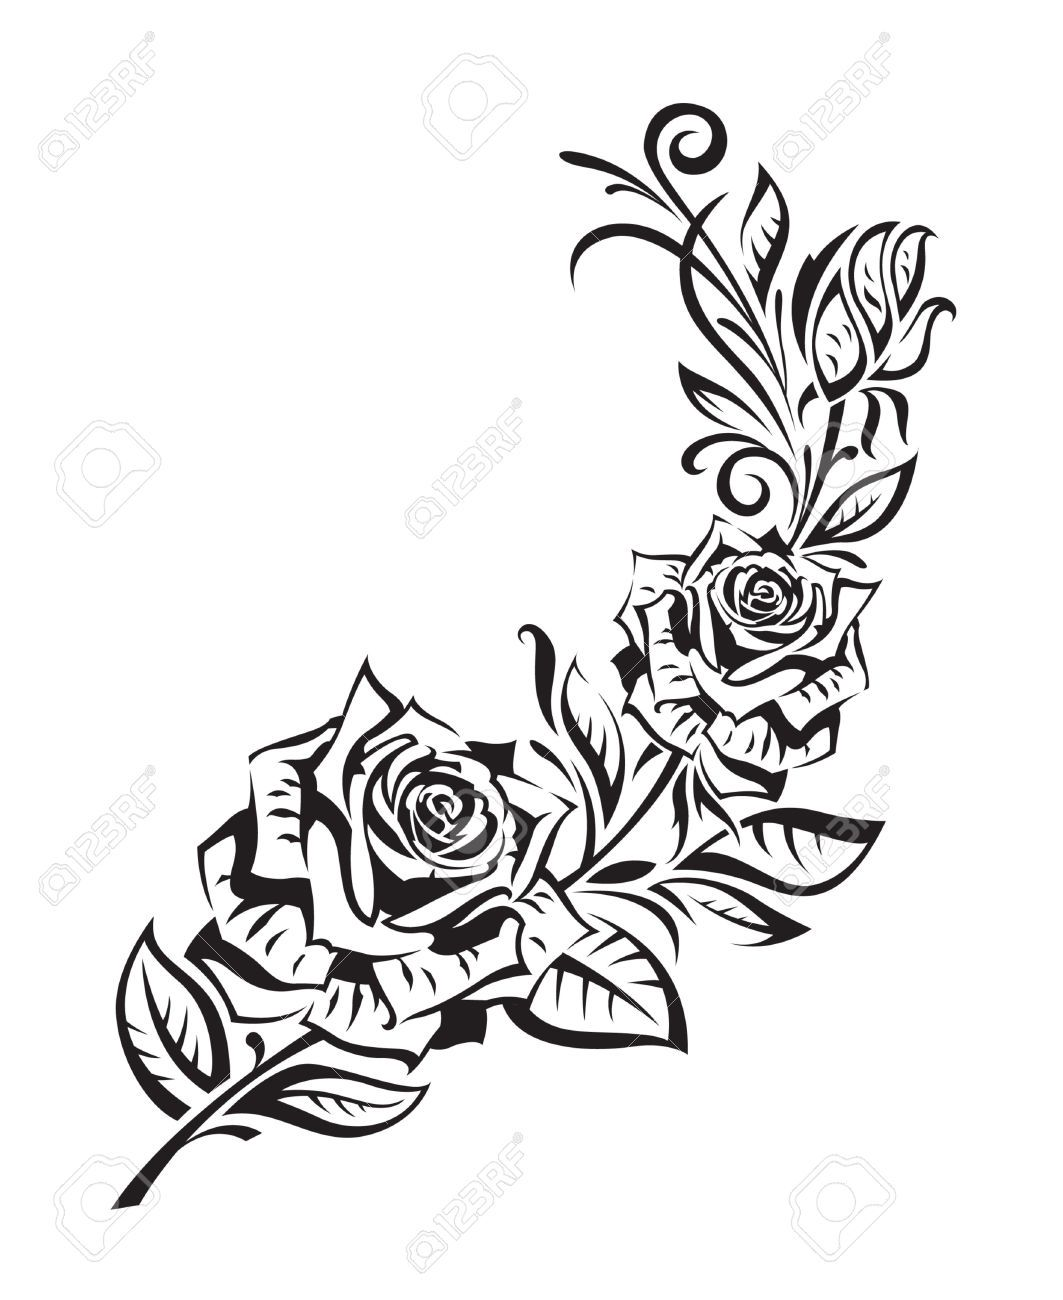 25657895 black rosebush on white background stock vector rose tattoo 1063 1300. Black Bedroom Furniture Sets. Home Design Ideas